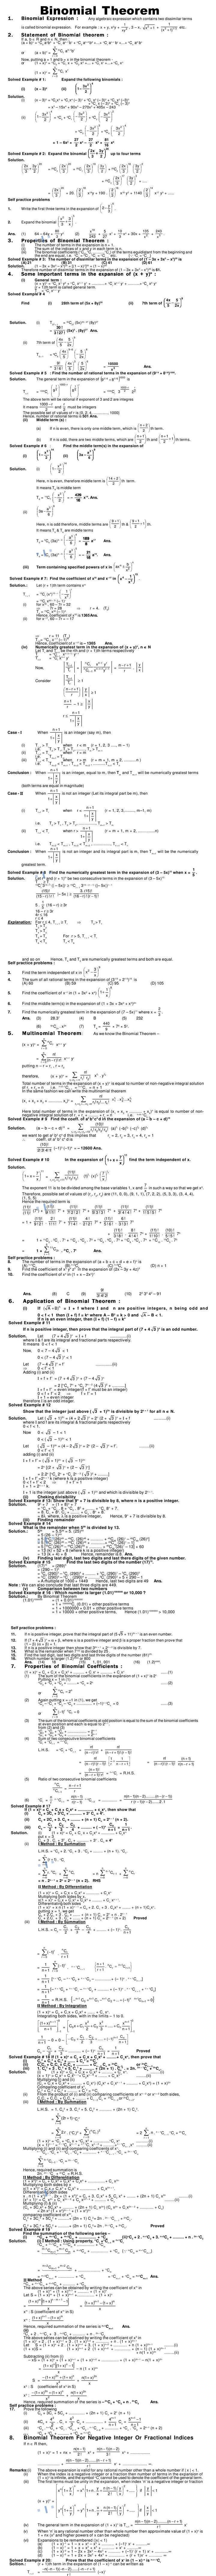 Maths Study Material - Chapter 21